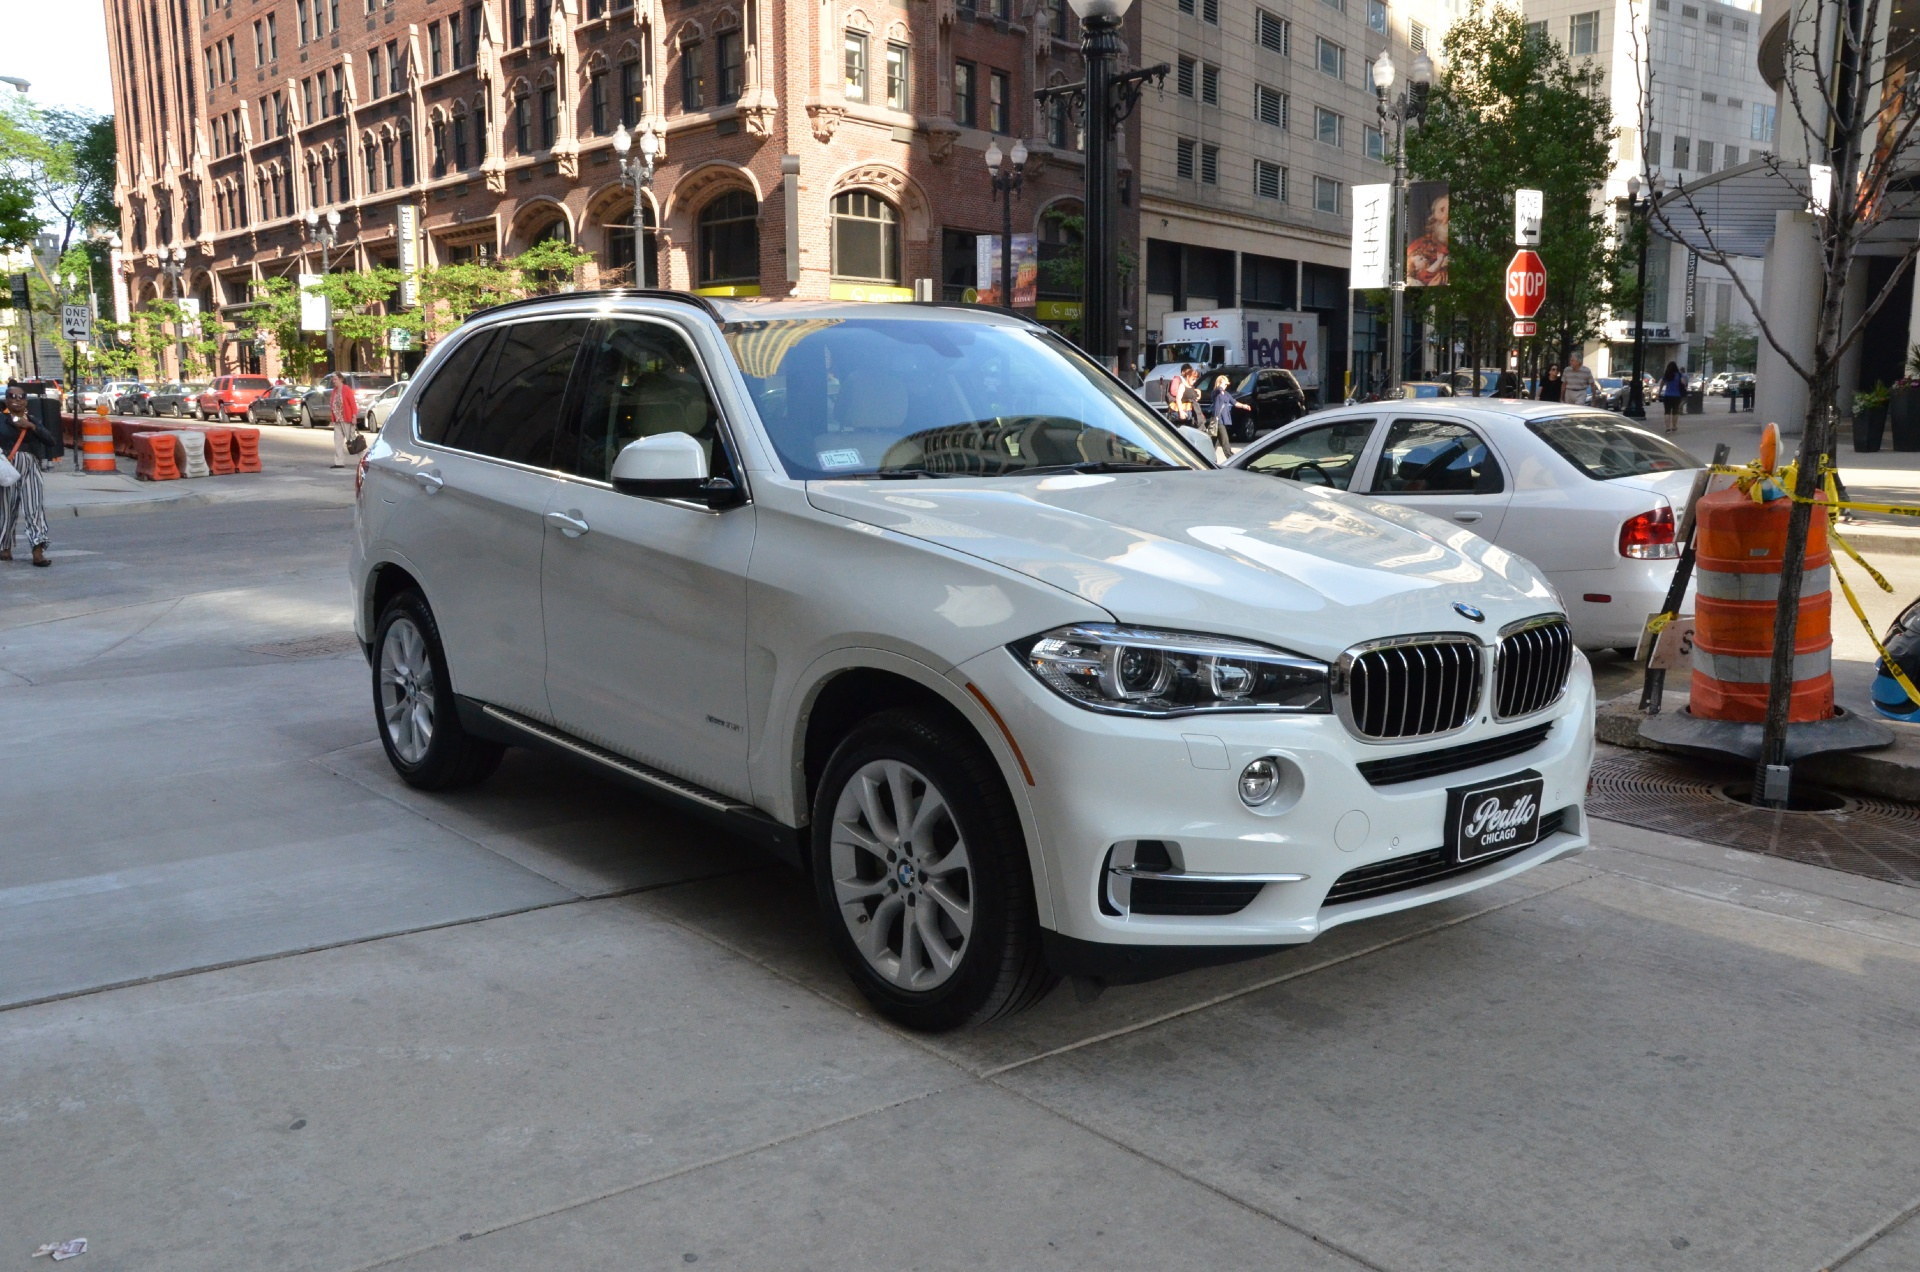 2015 bmw x5 xdrive35i stock 59558 for sale near chicago. Black Bedroom Furniture Sets. Home Design Ideas